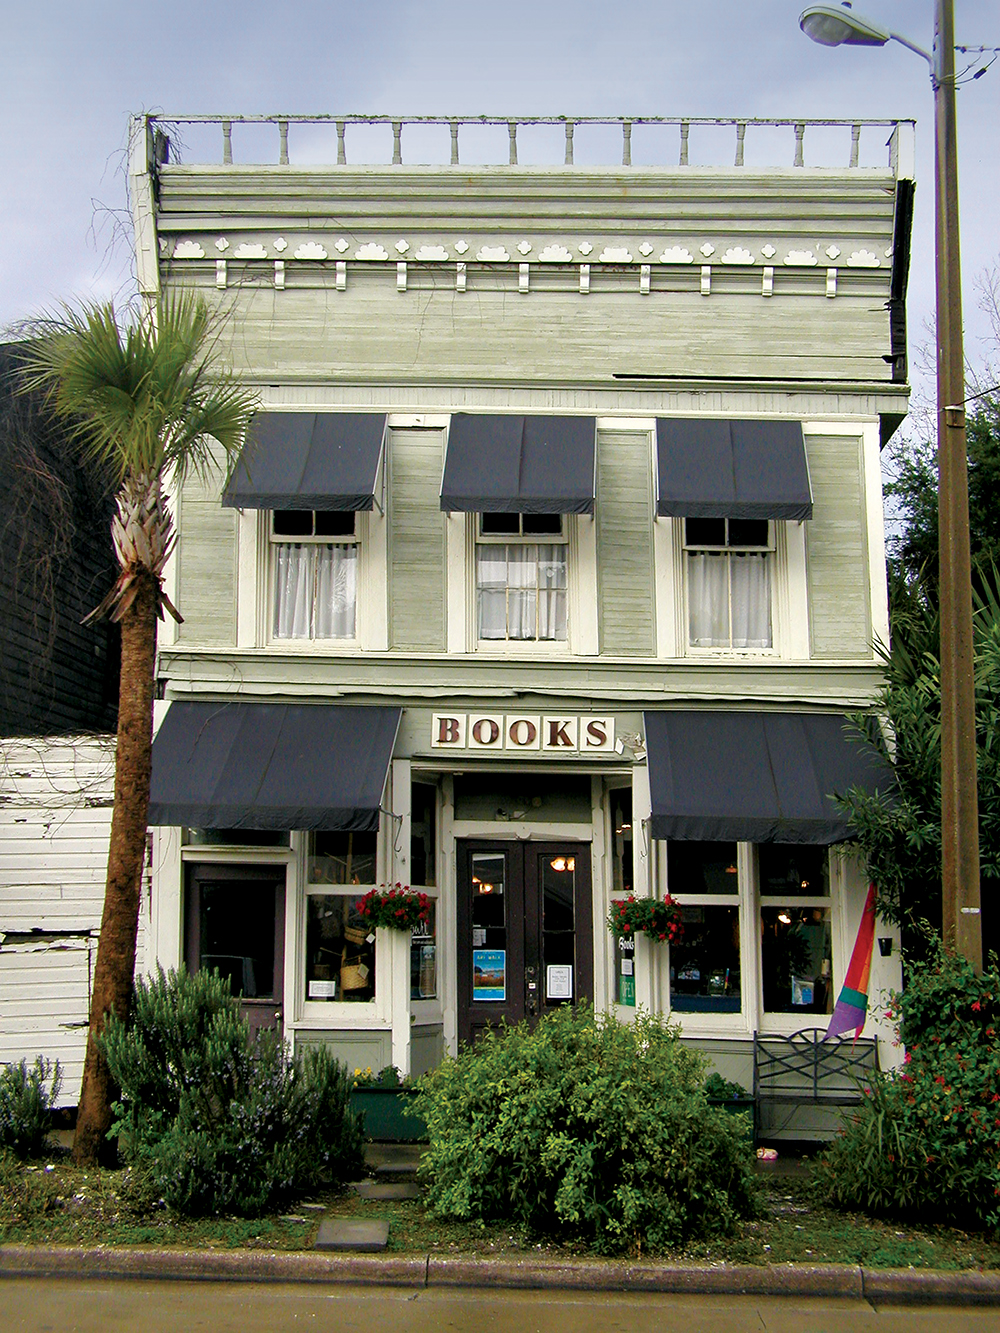 Downtown books and Purl in Apalachicola